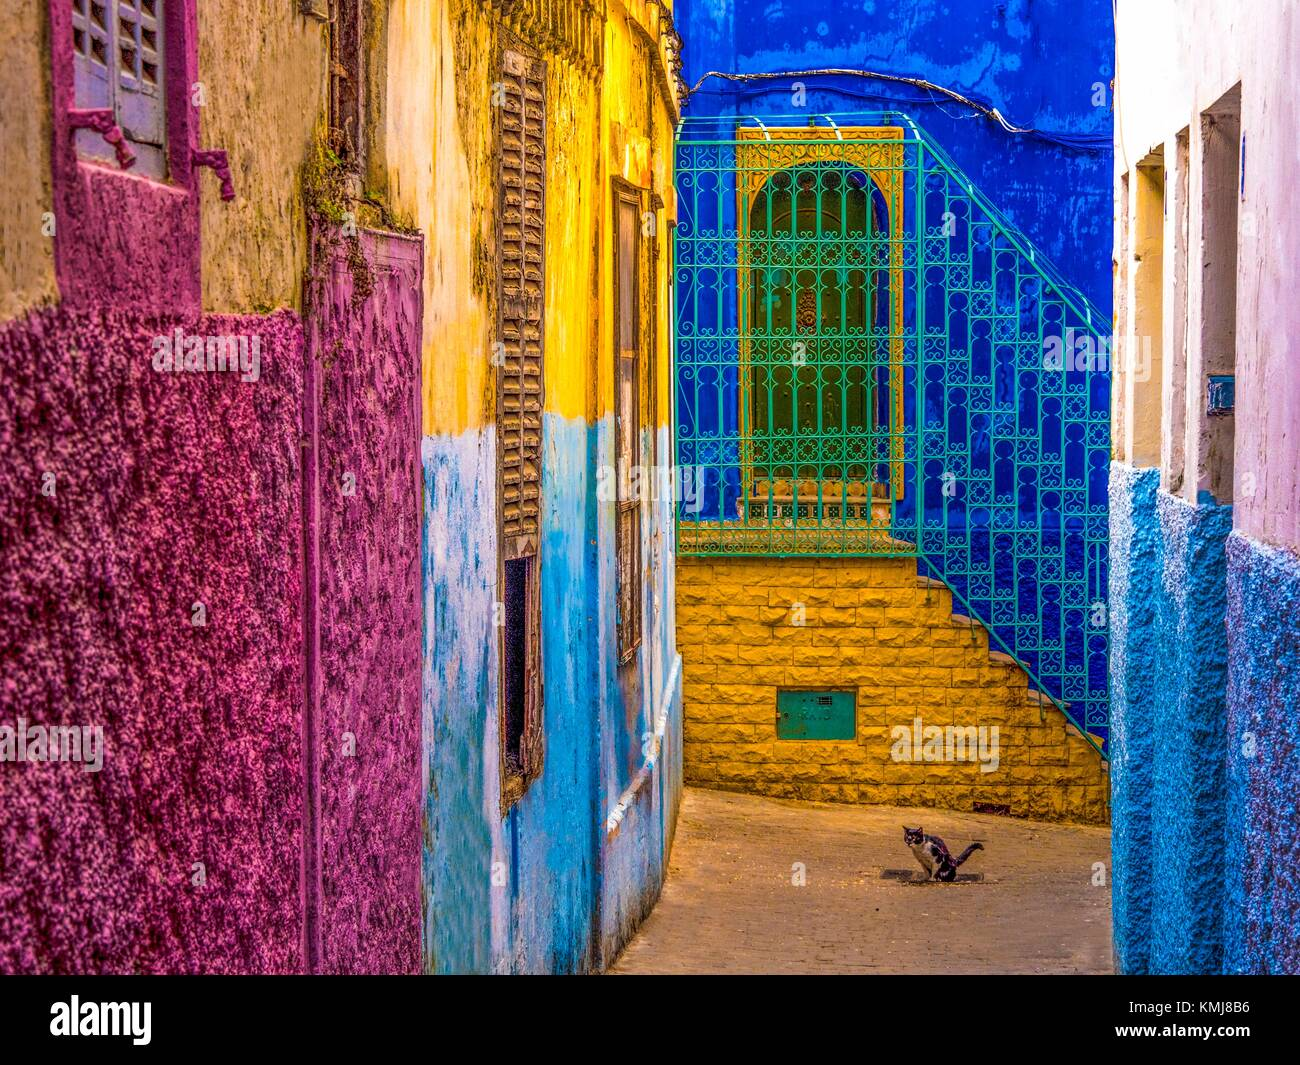 Morocco, Tangier, in the 'Medina' (old part) of Tangier. - Stock Image